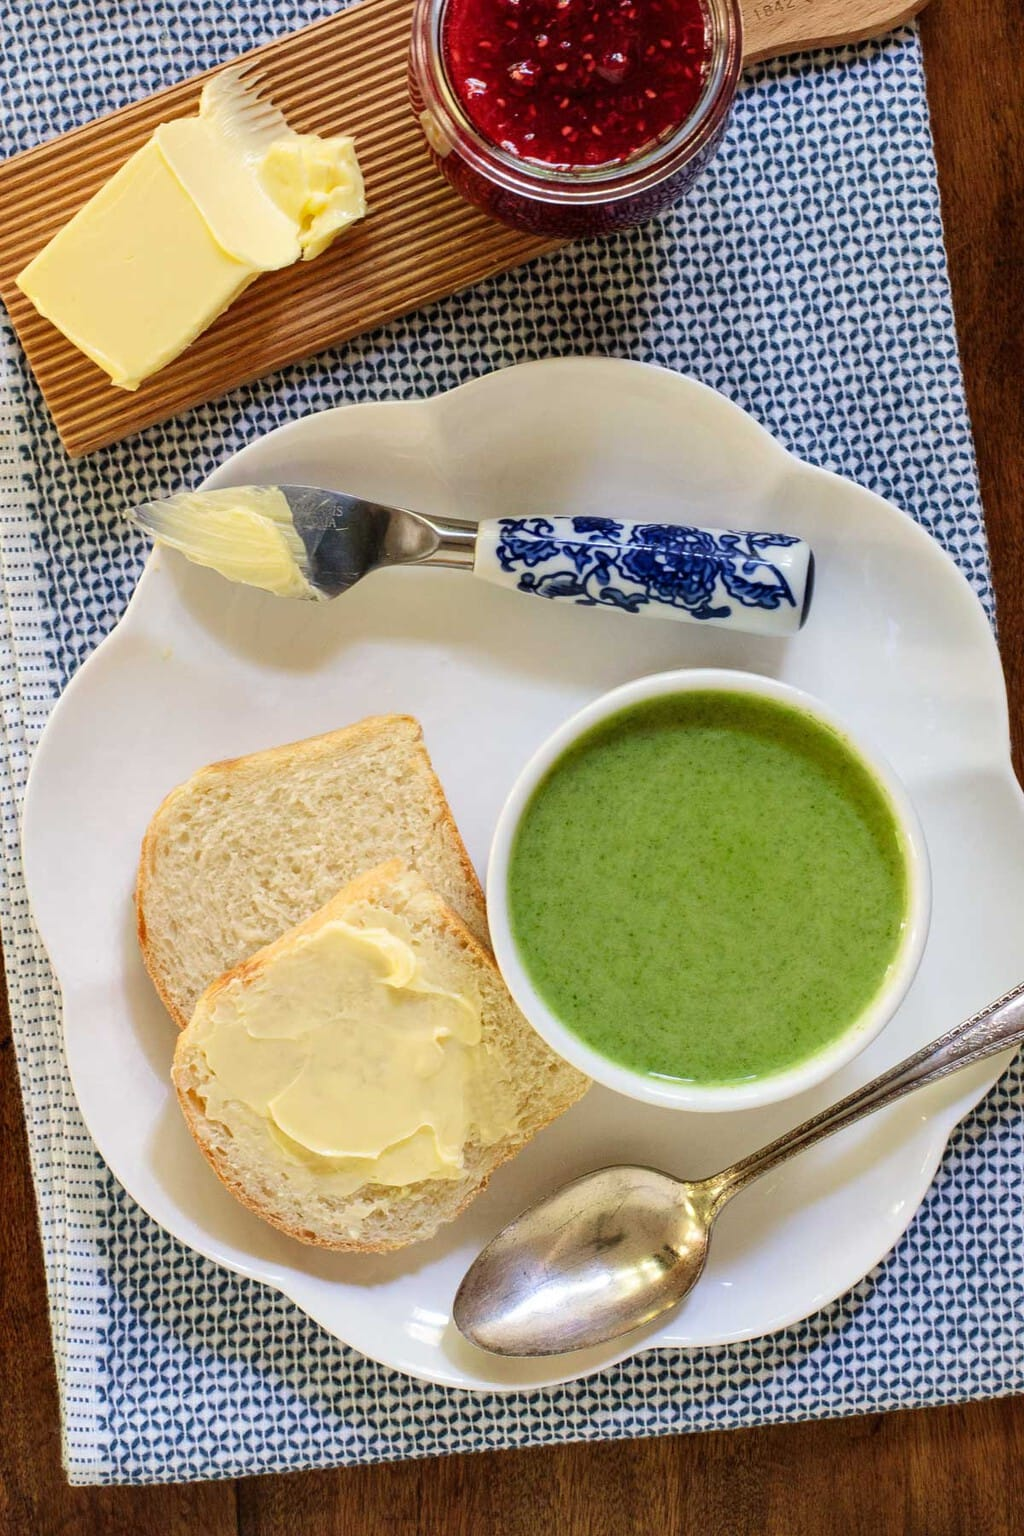 Overhead photo of a plate with slices of Overnight No-Knead Brioche Bread next to a cup of Fresh Spinach Soup with jelly and jam.